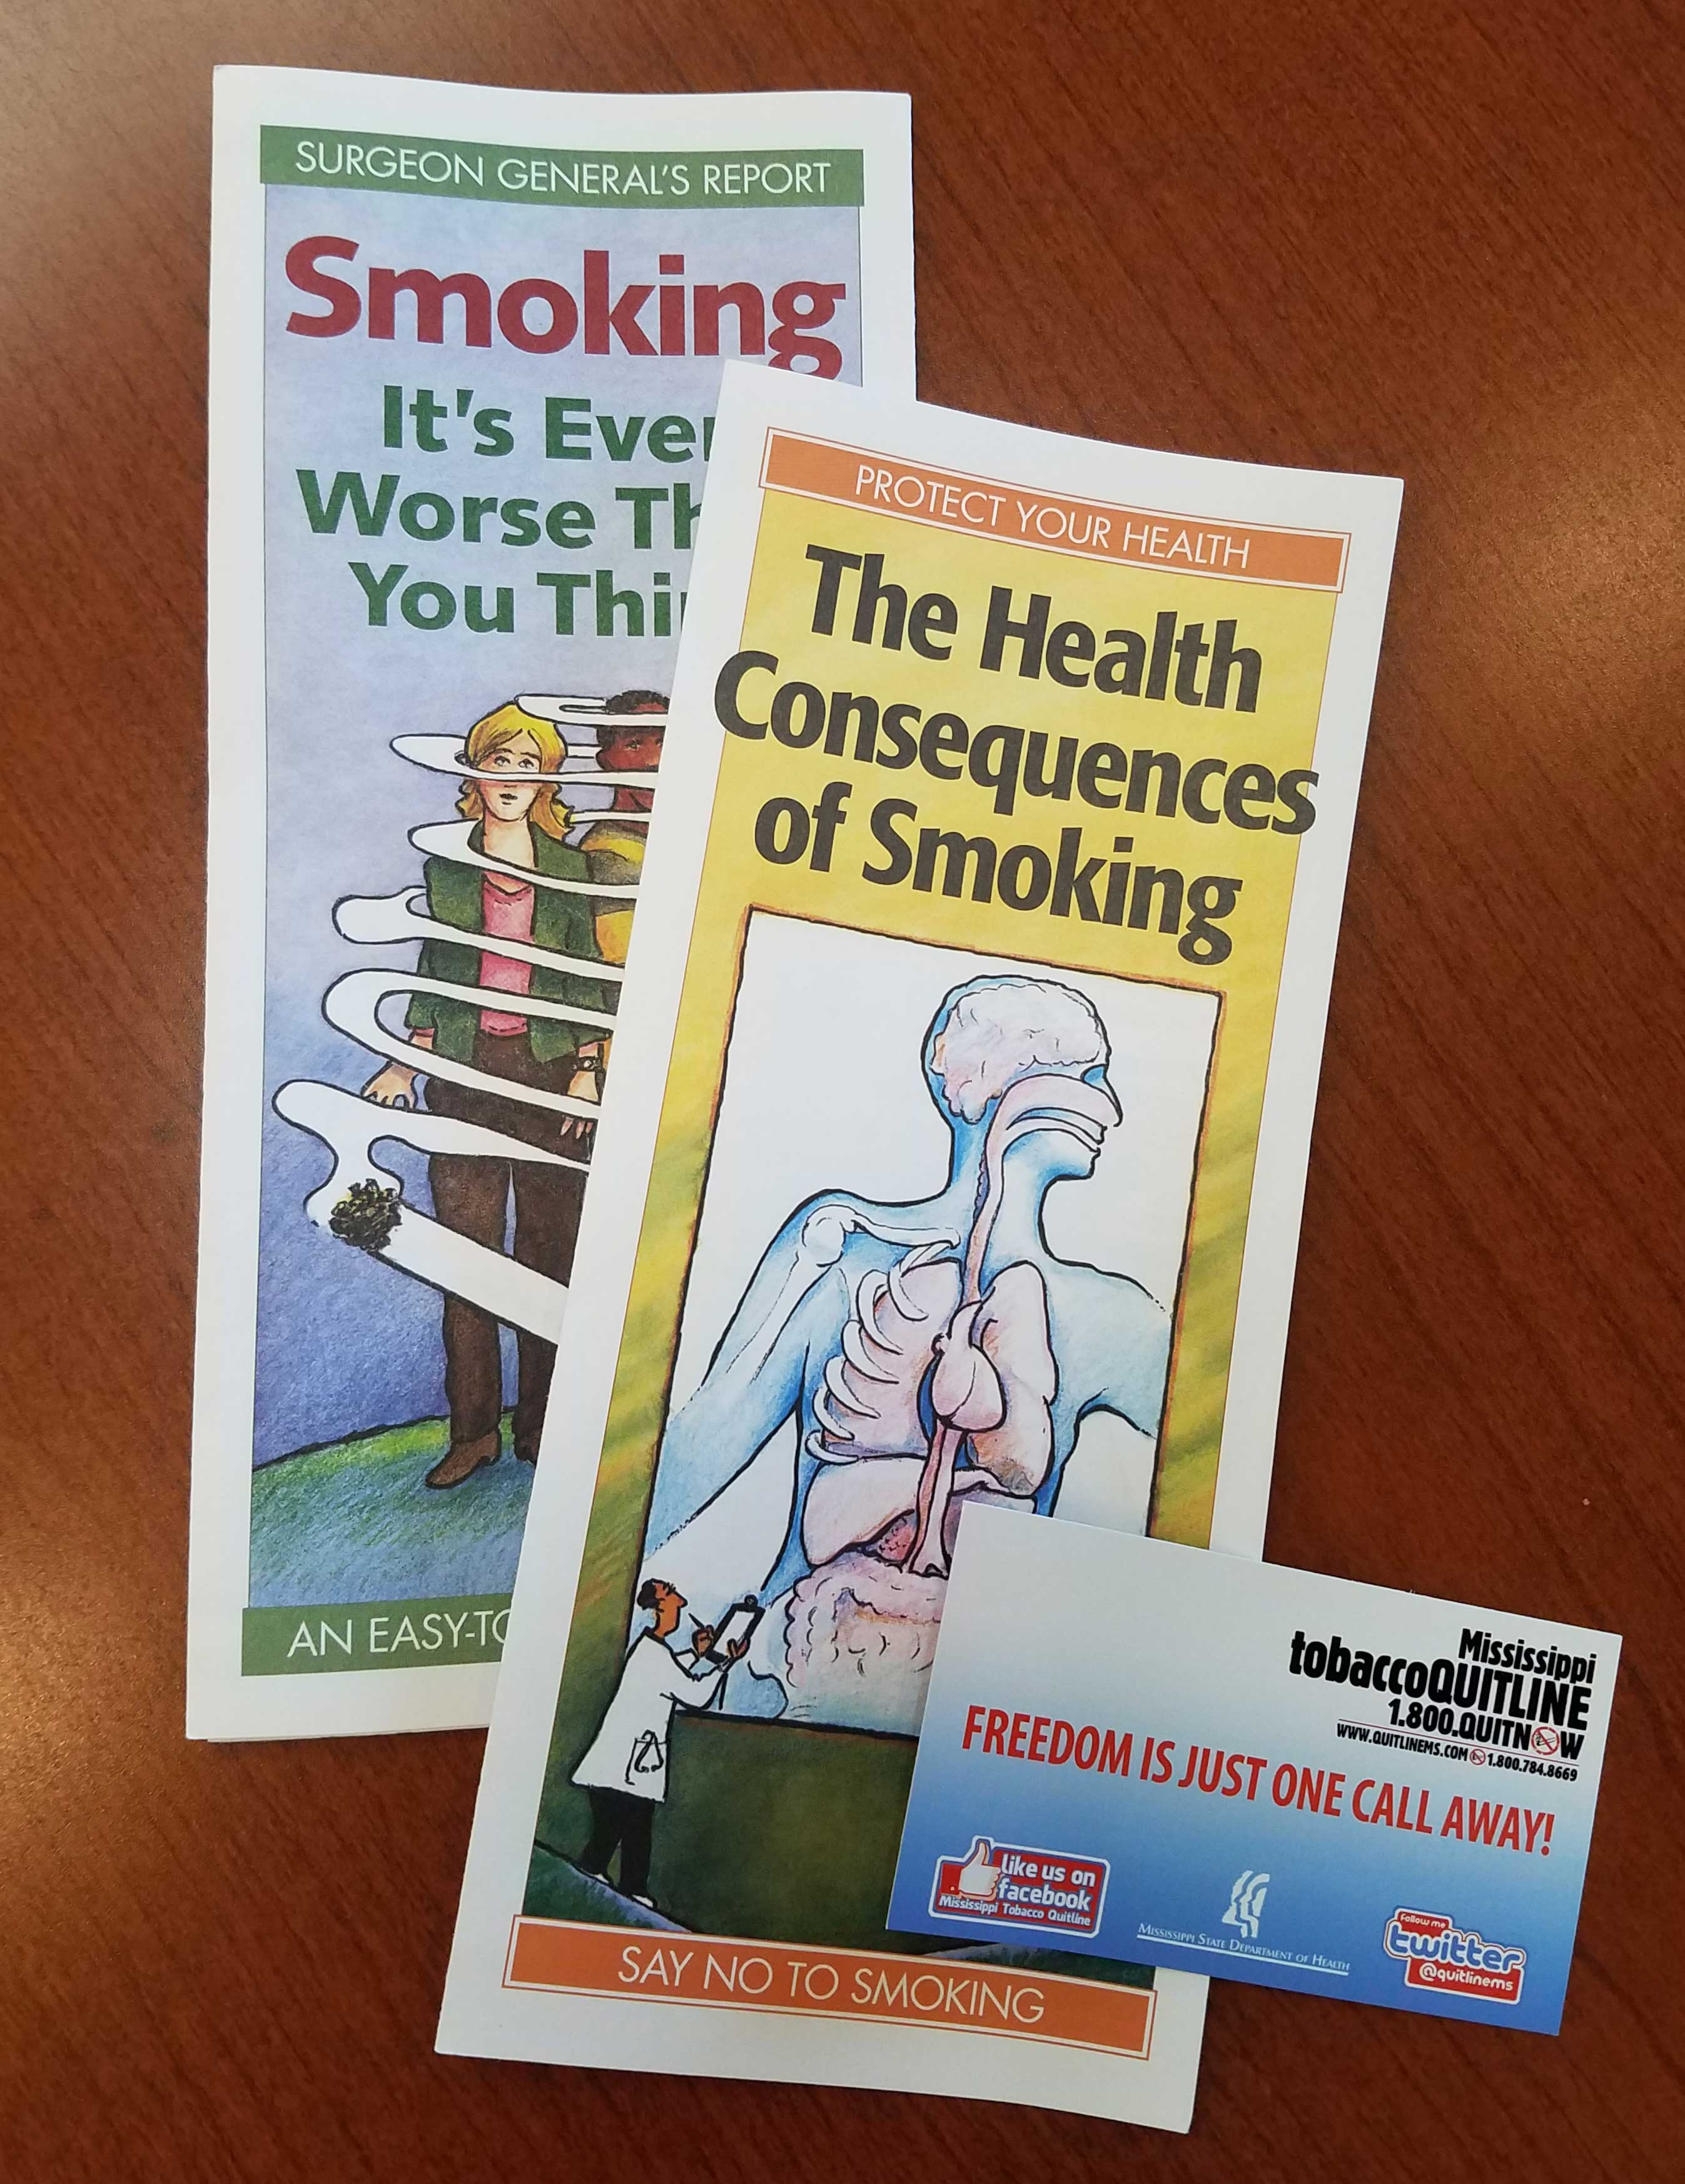 Tobacco Free Mississippi - MS Academy of Family Physicians